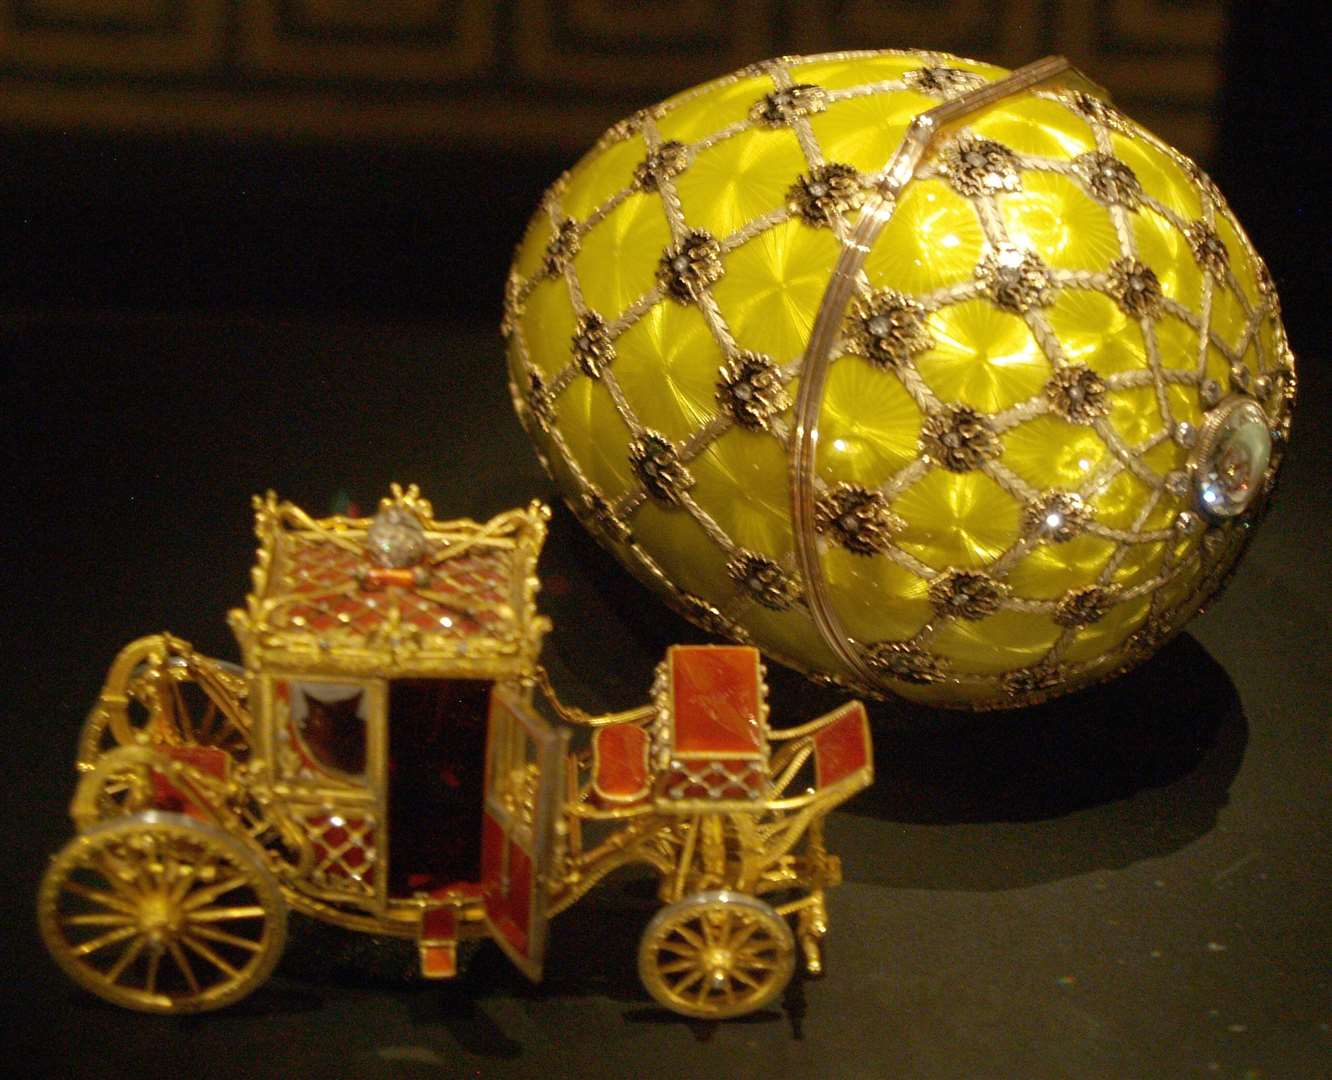 The Imperial Coronation Fabergé egg is perhaps his best known work for the Russian Tsars. Picture: Miguel Hermoso Cuesta